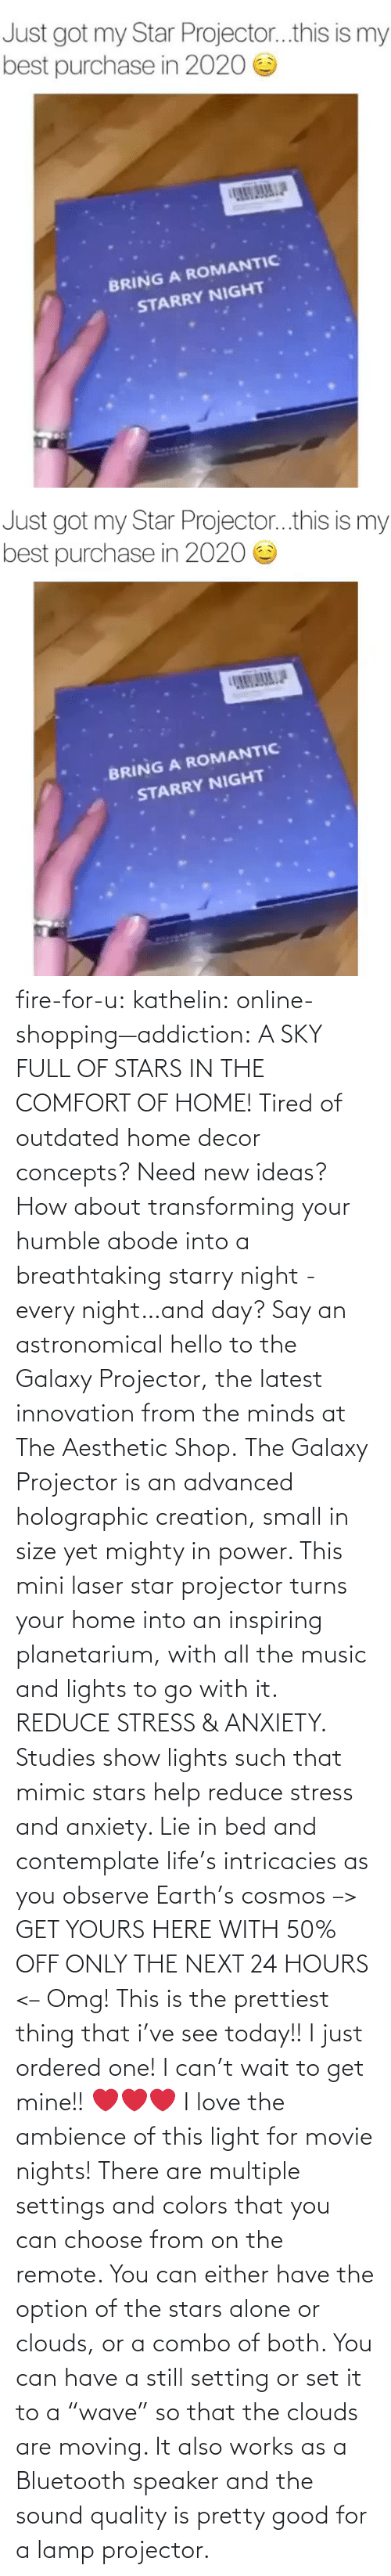 "Either: fire-for-u:  kathelin: online-shopping—addiction:  A SKY FULL OF STARS IN THE COMFORT OF HOME! Tired of outdated home decor concepts? Need new ideas? How about transforming your humble abode into a breathtaking starry night - every night…and day? Say an astronomical hello to the Galaxy Projector, the latest innovation from the minds at The Aesthetic Shop. The Galaxy Projector is an advanced holographic creation, small in size yet mighty in power. This mini laser star projector turns your home into an inspiring planetarium, with all the music and lights to go with it. REDUCE STRESS & ANXIETY. Studies show lights such that mimic stars help reduce stress and anxiety. Lie in bed and contemplate life's intricacies as you observe Earth's cosmos  –> GET YOURS HERE WITH 50% OFF ONLY THE NEXT 24 HOURS <–   Omg! This is the prettiest thing that i've see today!! I just ordered one! I can't wait to get mine!! ❤️️❤️️❤️️  I love the ambience of this light for movie nights! There are multiple settings and colors that you can choose from on the remote. You can either have the option of the stars alone or clouds, or a combo of both. You can have a still setting or set it to a ""wave"" so that the clouds are moving. It also works as a Bluetooth speaker and the sound quality is pretty good for a lamp projector."